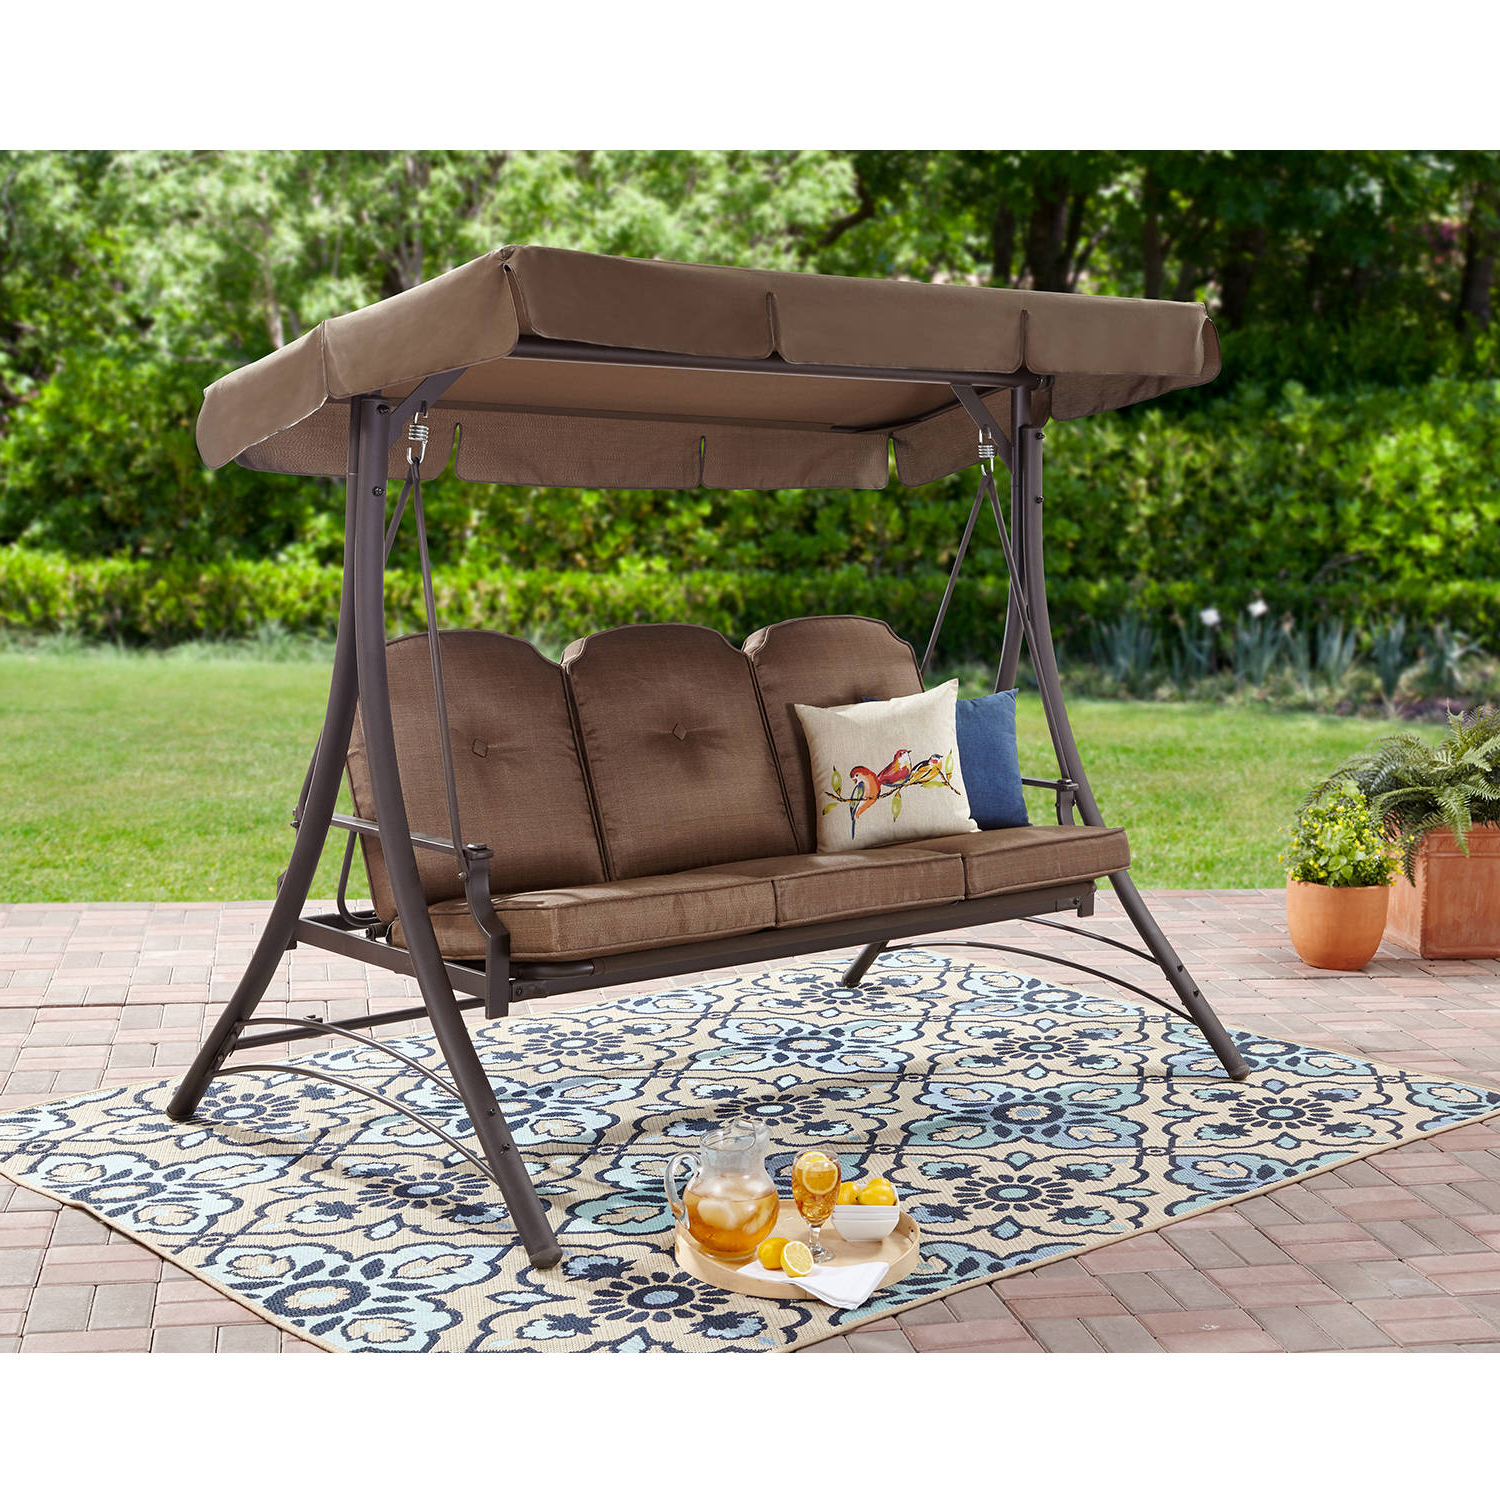 3 Person Red With Brown Powder Coated Frame Steel Outdoor Swings With Regard To Popular Mainstays Wentworth 3 Person Cushioned Canopy Porch Swing Bed – Walmart (Gallery 4 of 25)